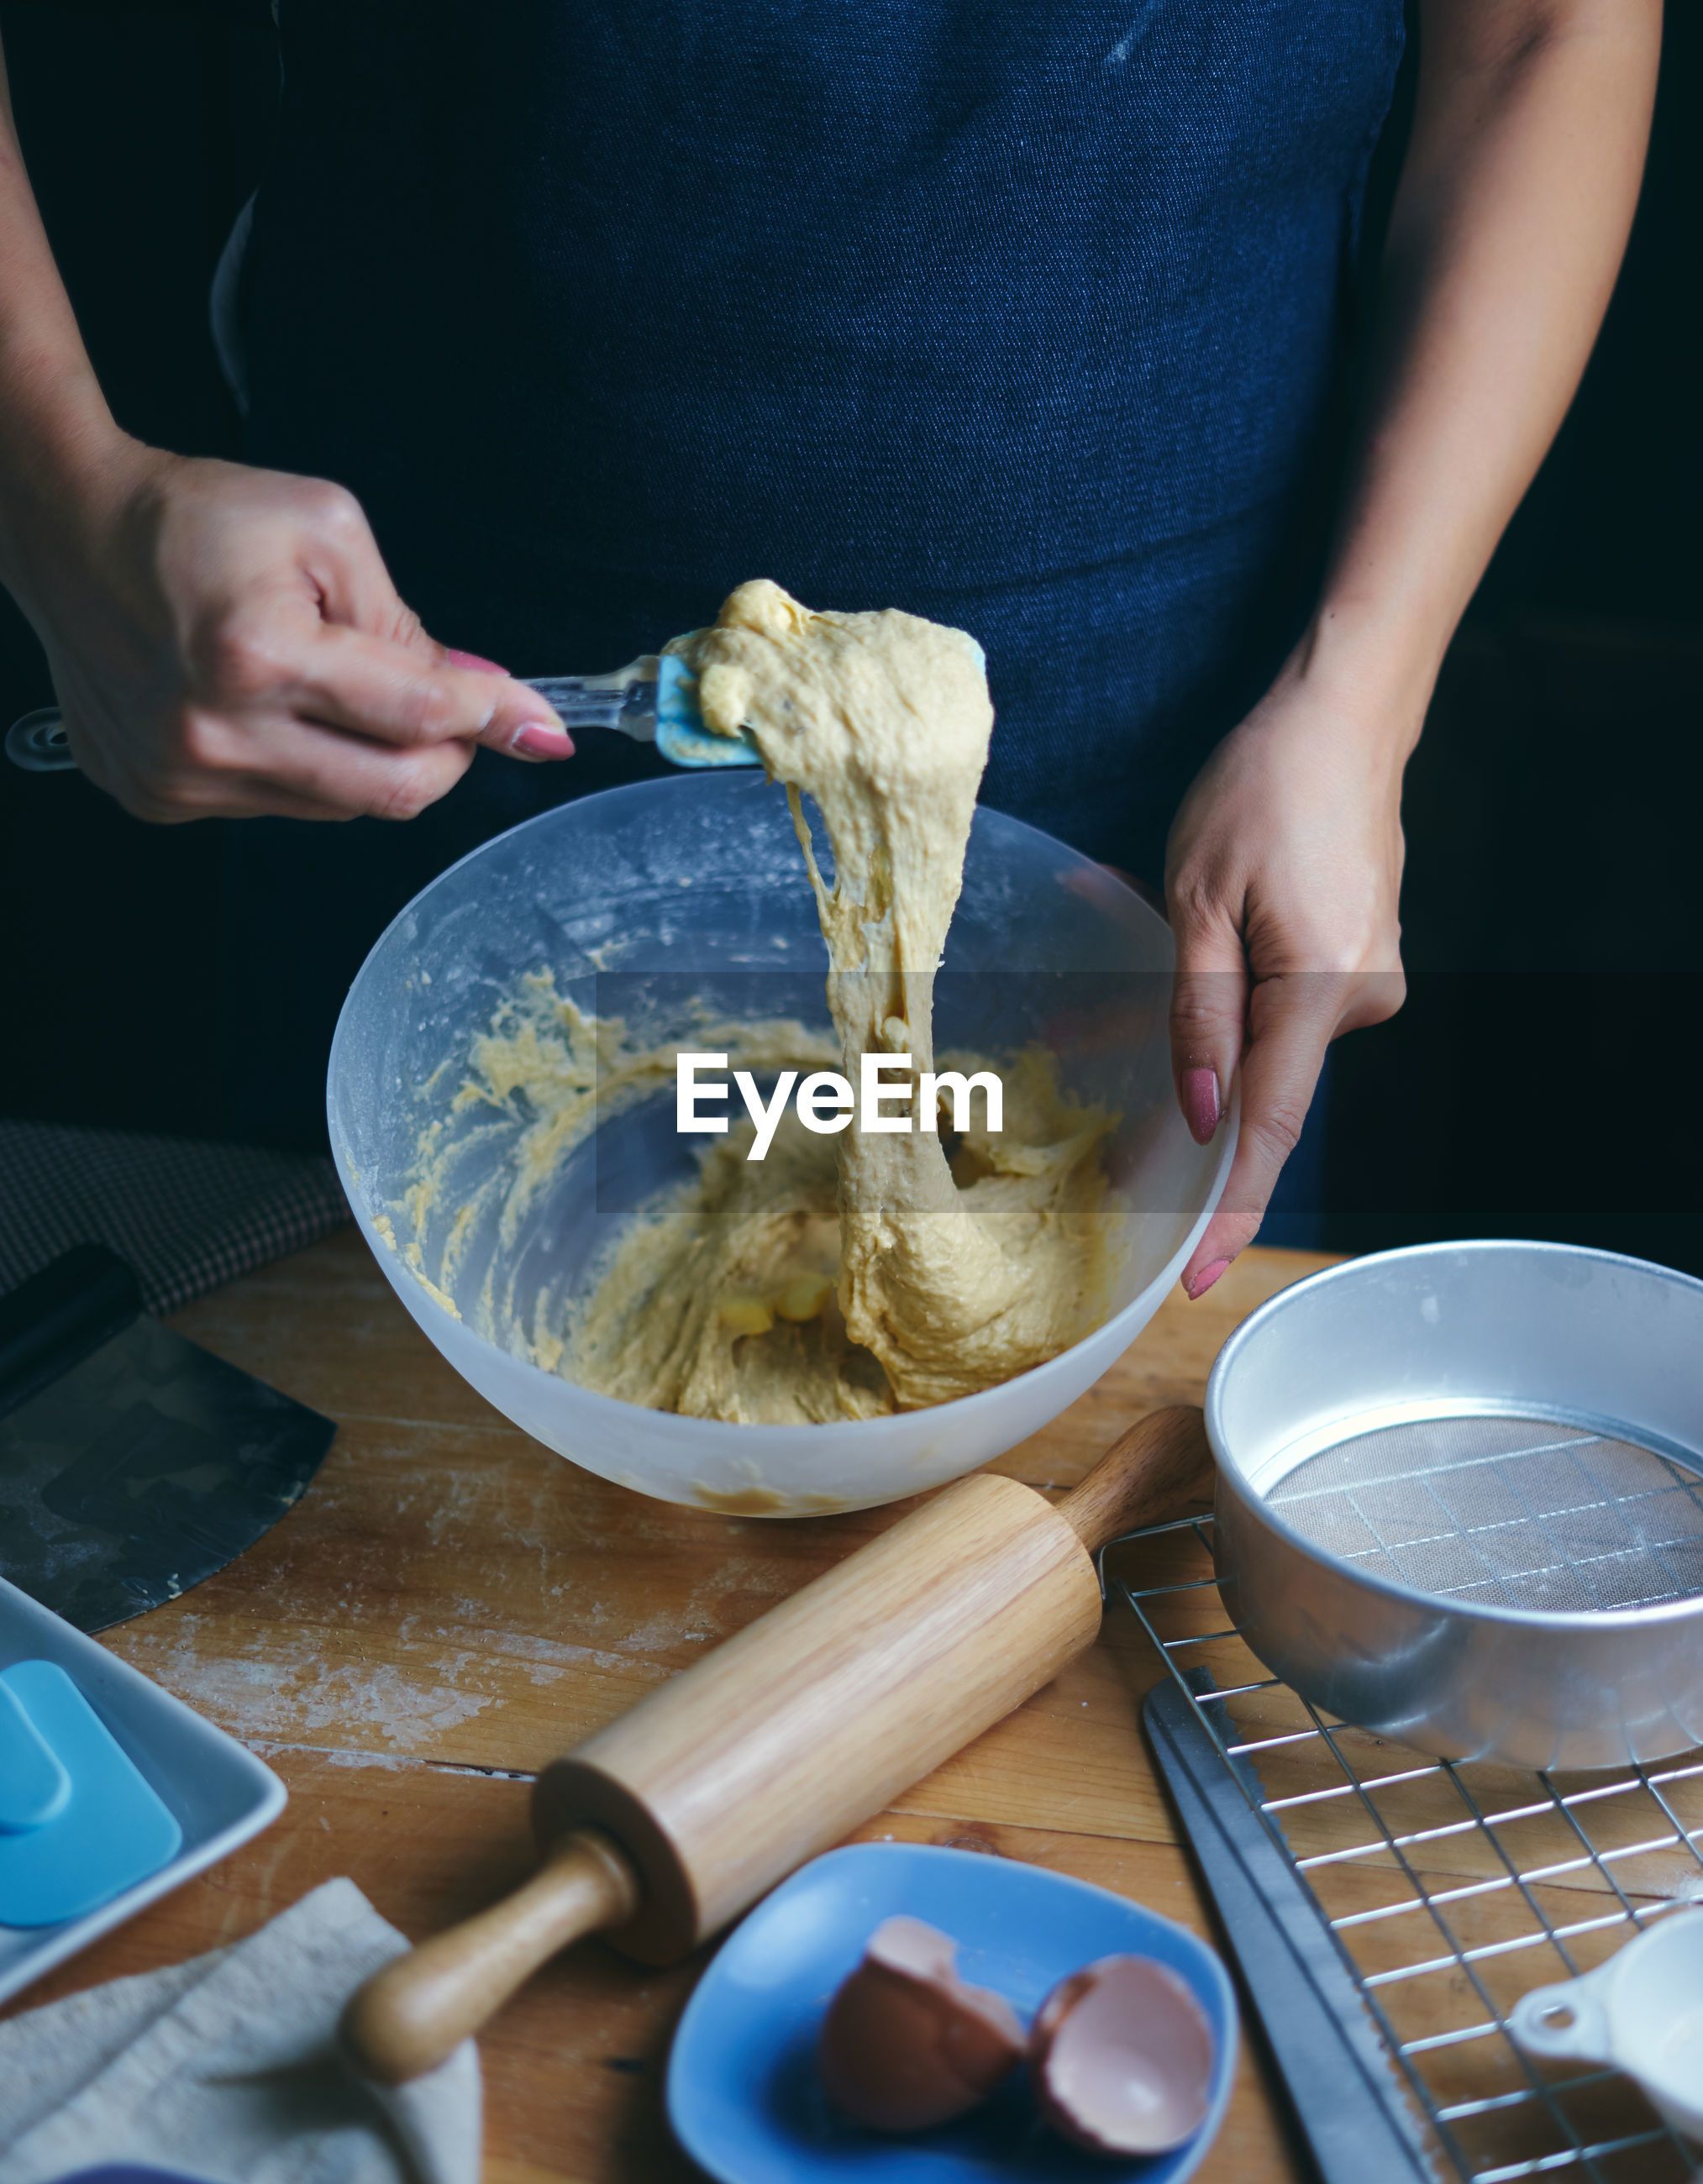 Close-up of woman preparing batter in bowl at table